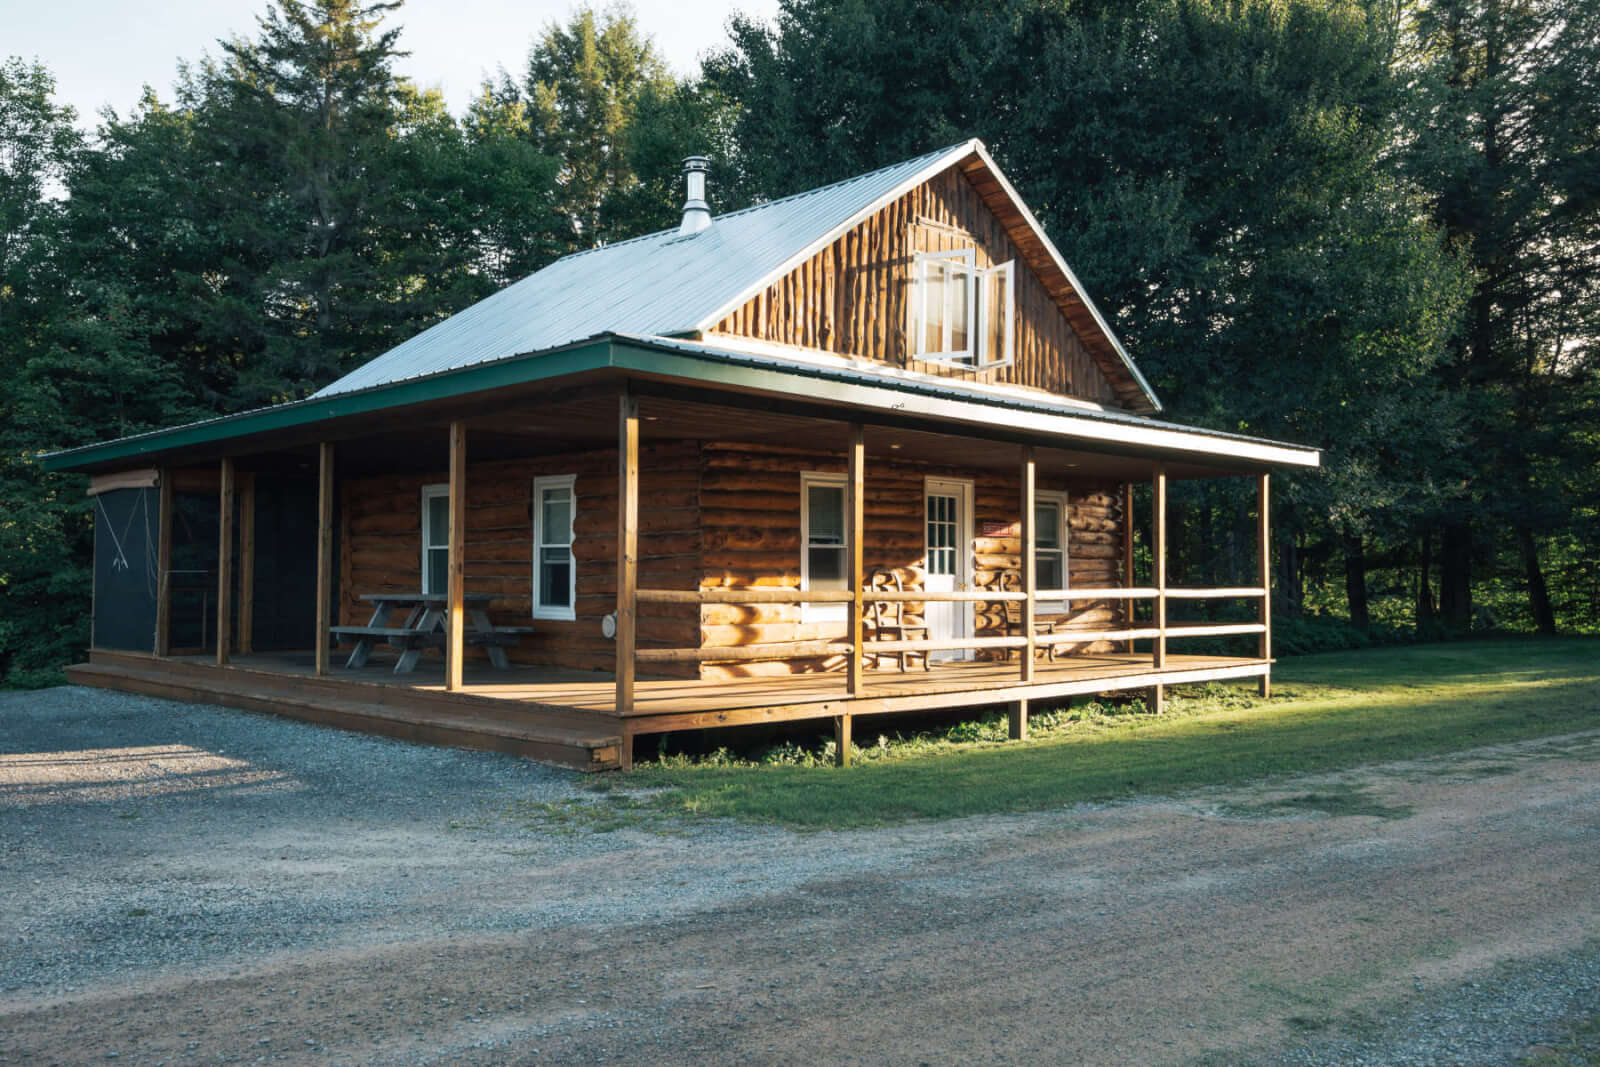 trailside-ranch-cabin-rentals-the-homestead-upstate-new-york